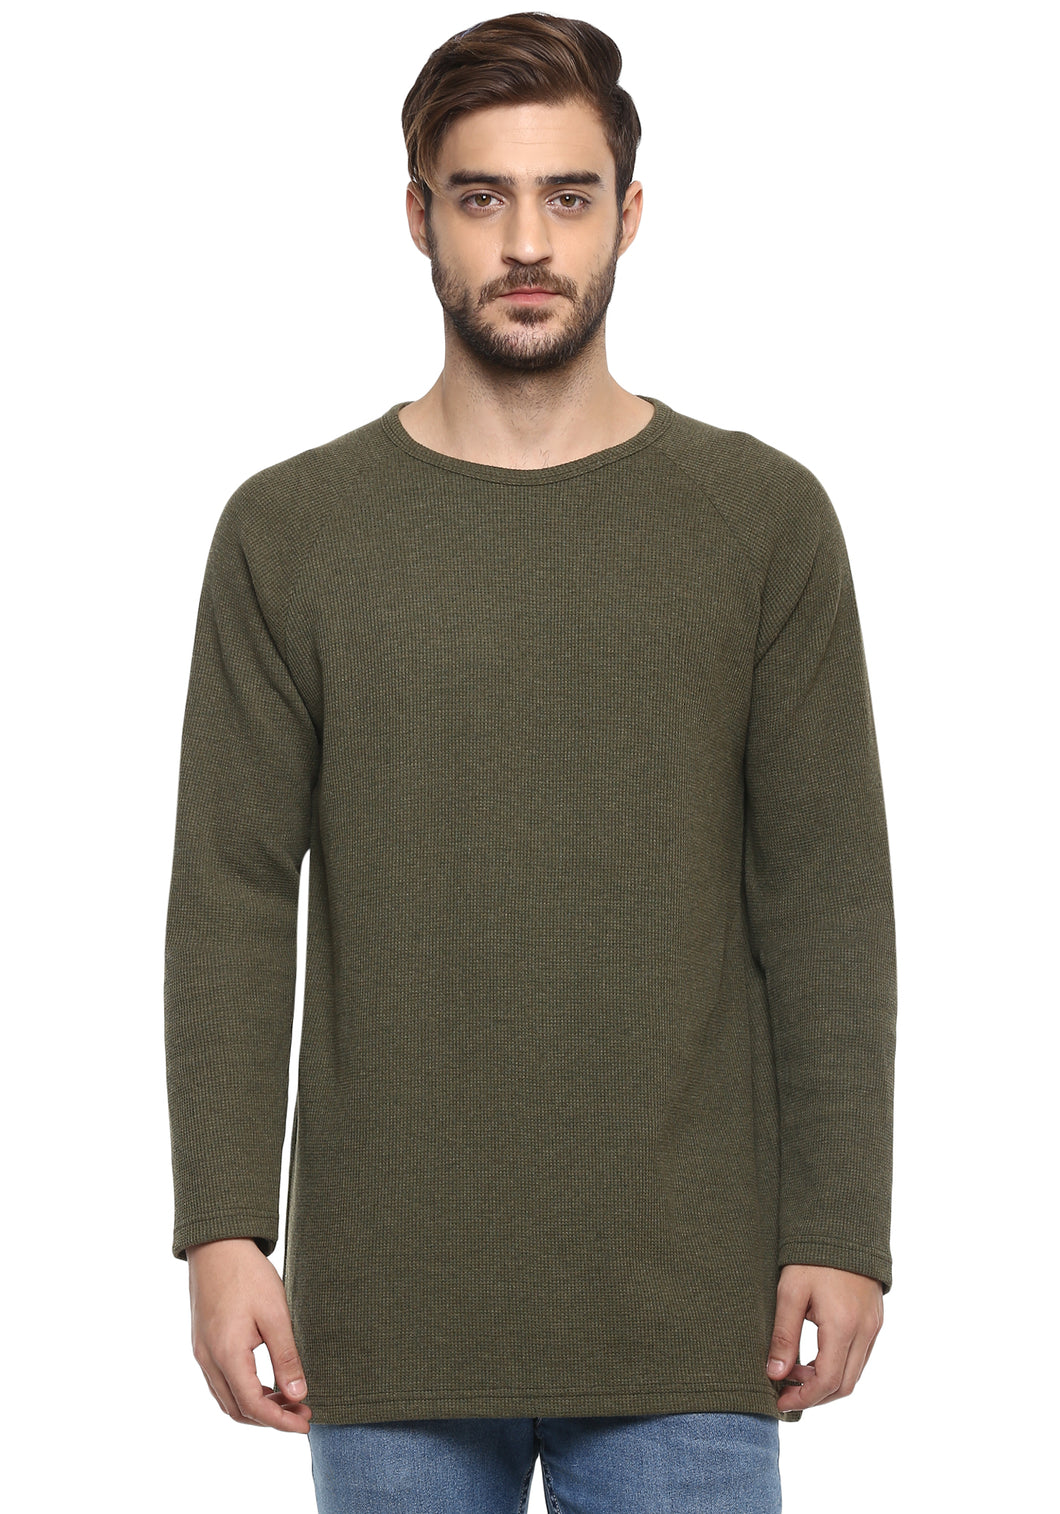 Full sleeve Olive Self Stripes Round Neck Tee